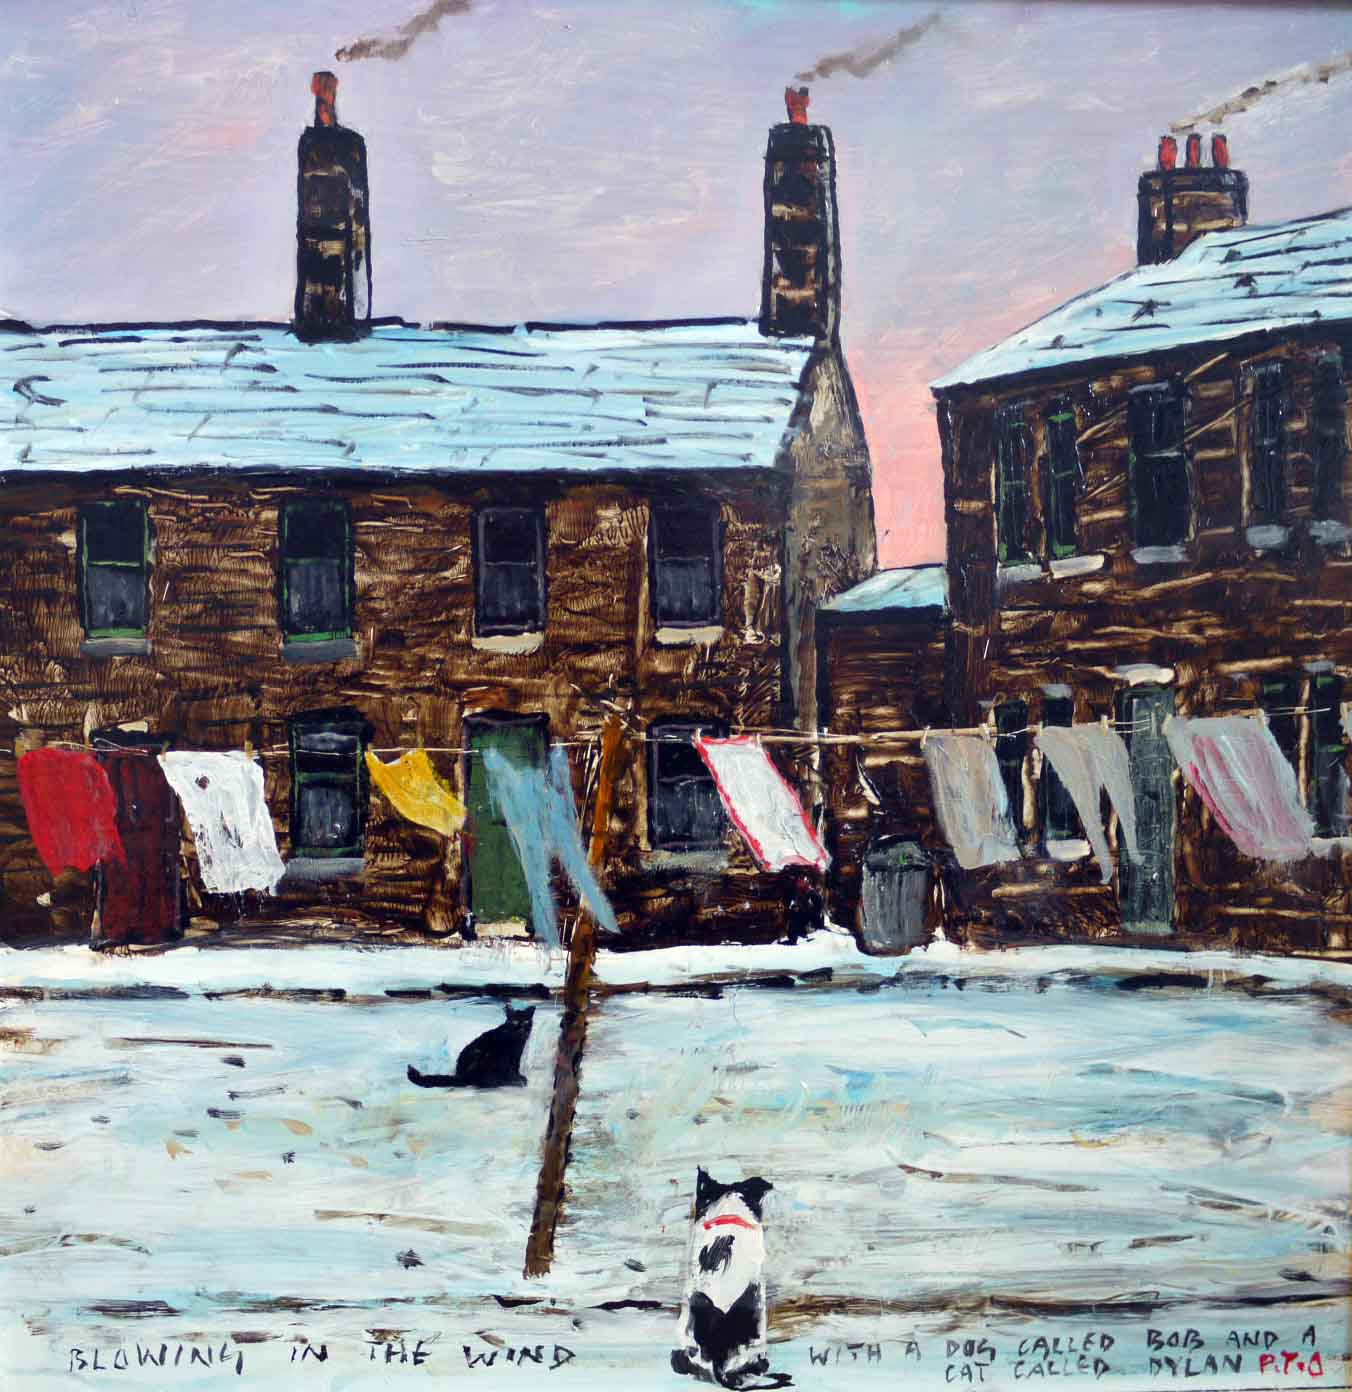 Blowing In The Wind by Peter Brook